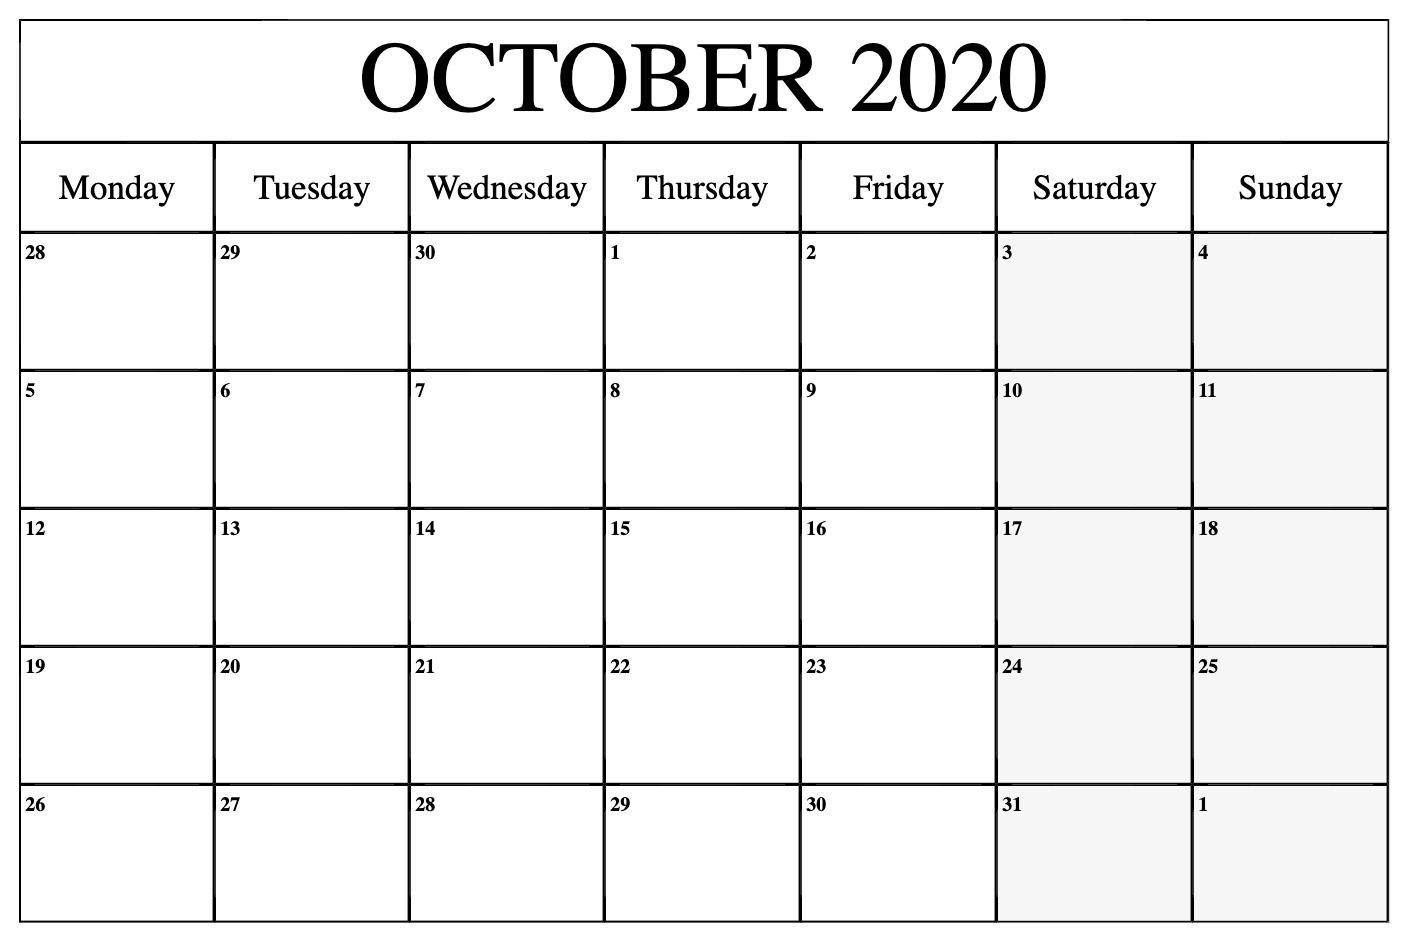 October 2020 Calendar Pdf, Word, Excel Template | Calendar